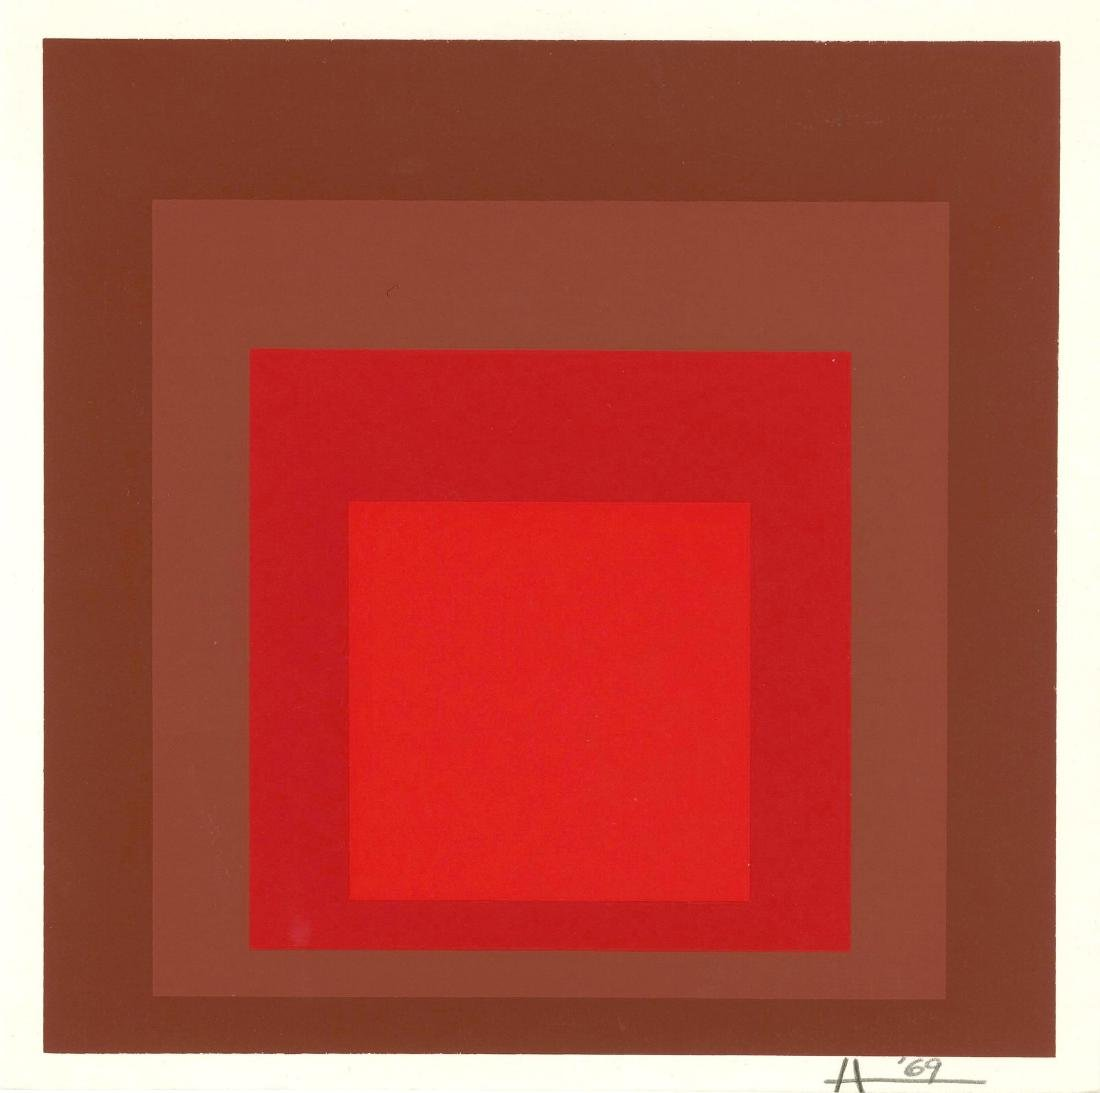 873: JOSEF ALBERS - Homage to the Square: R-I, d-5